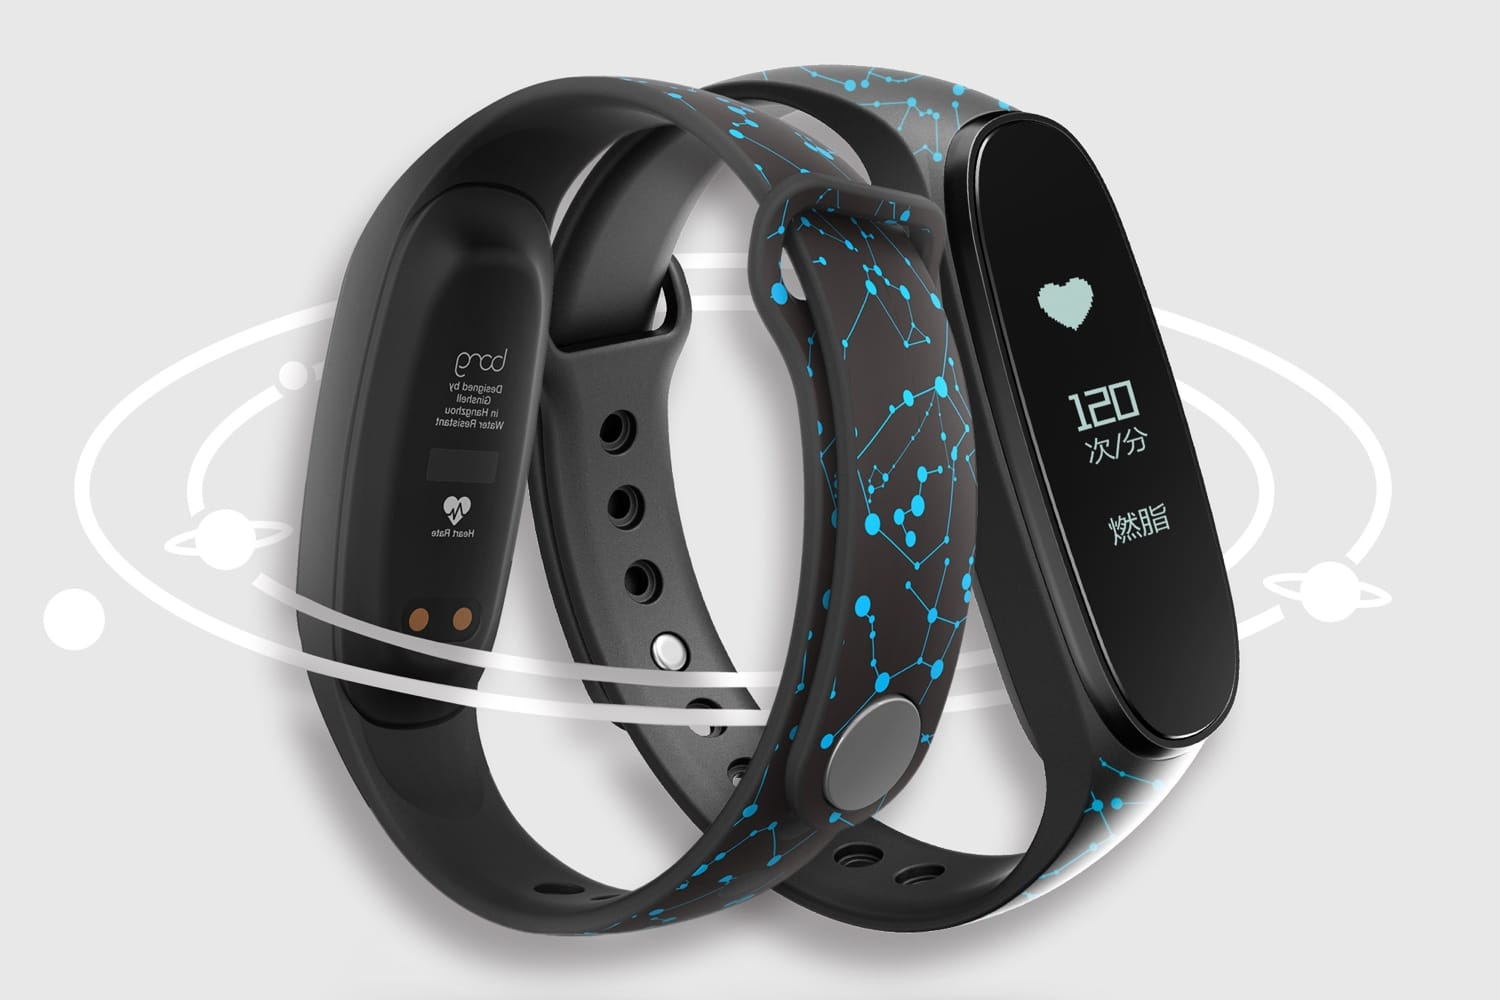 xiaomi mi band 3. Black Bedroom Furniture Sets. Home Design Ideas